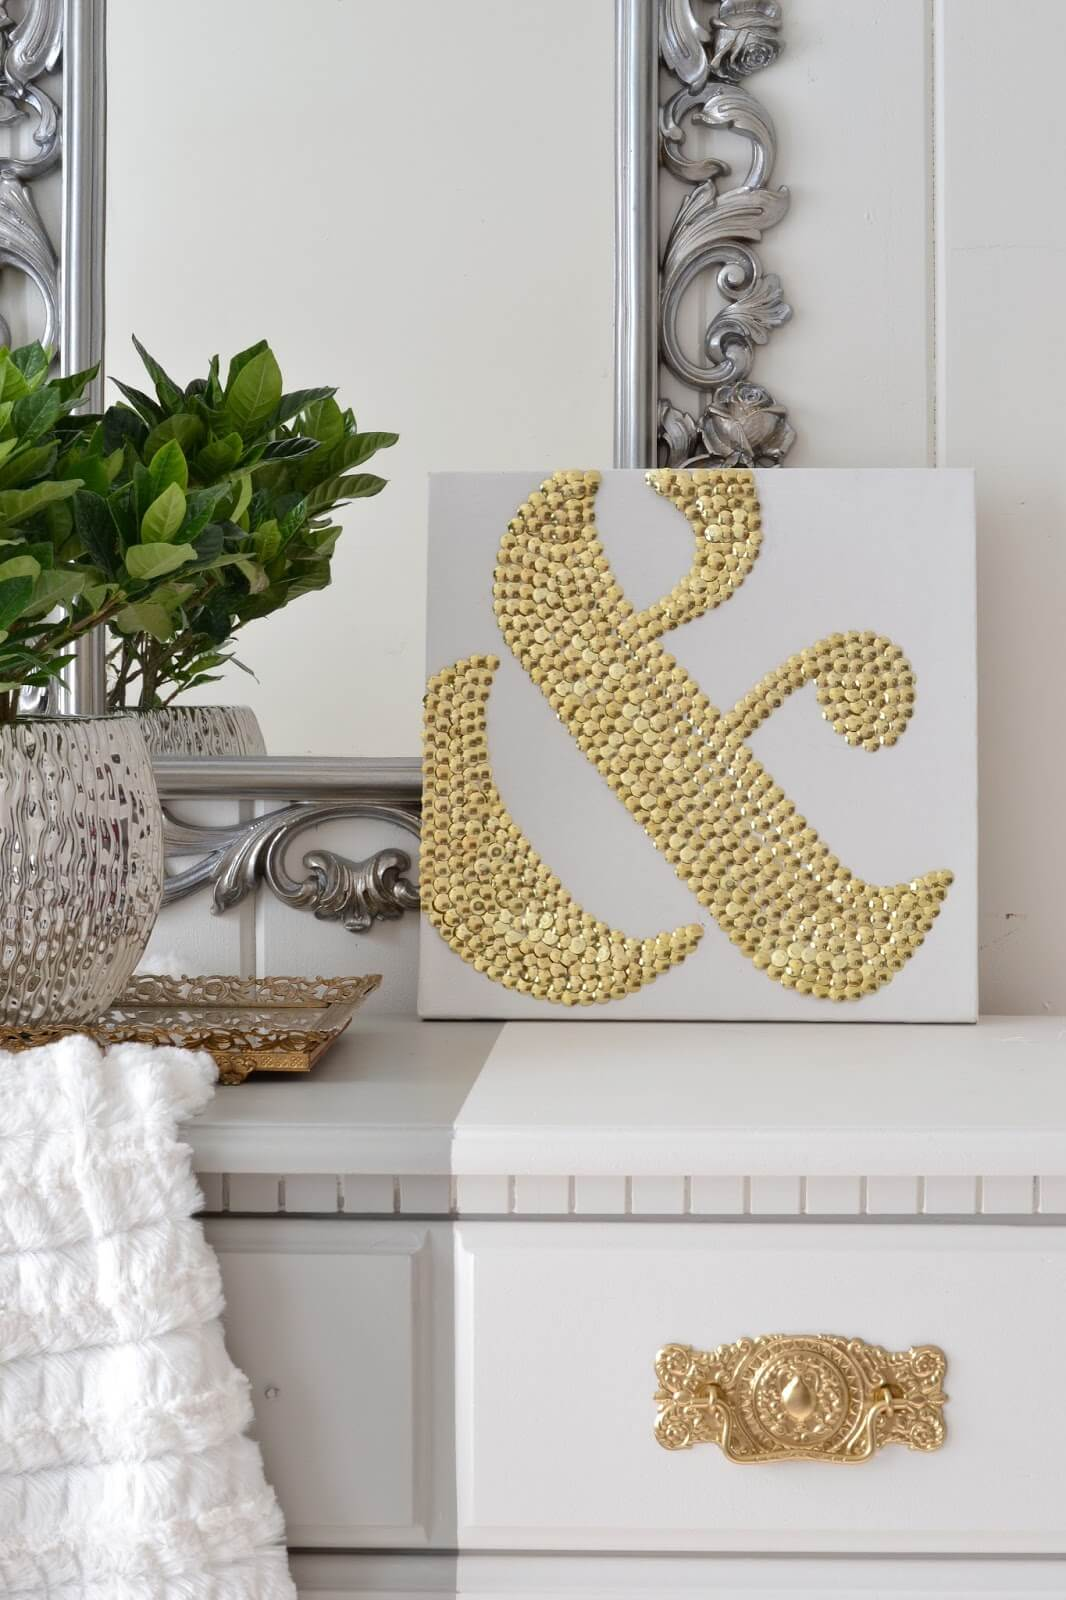 Best 33 Best Diy Dollar Store Home Decor Ideas And Designs For 2019 This Month